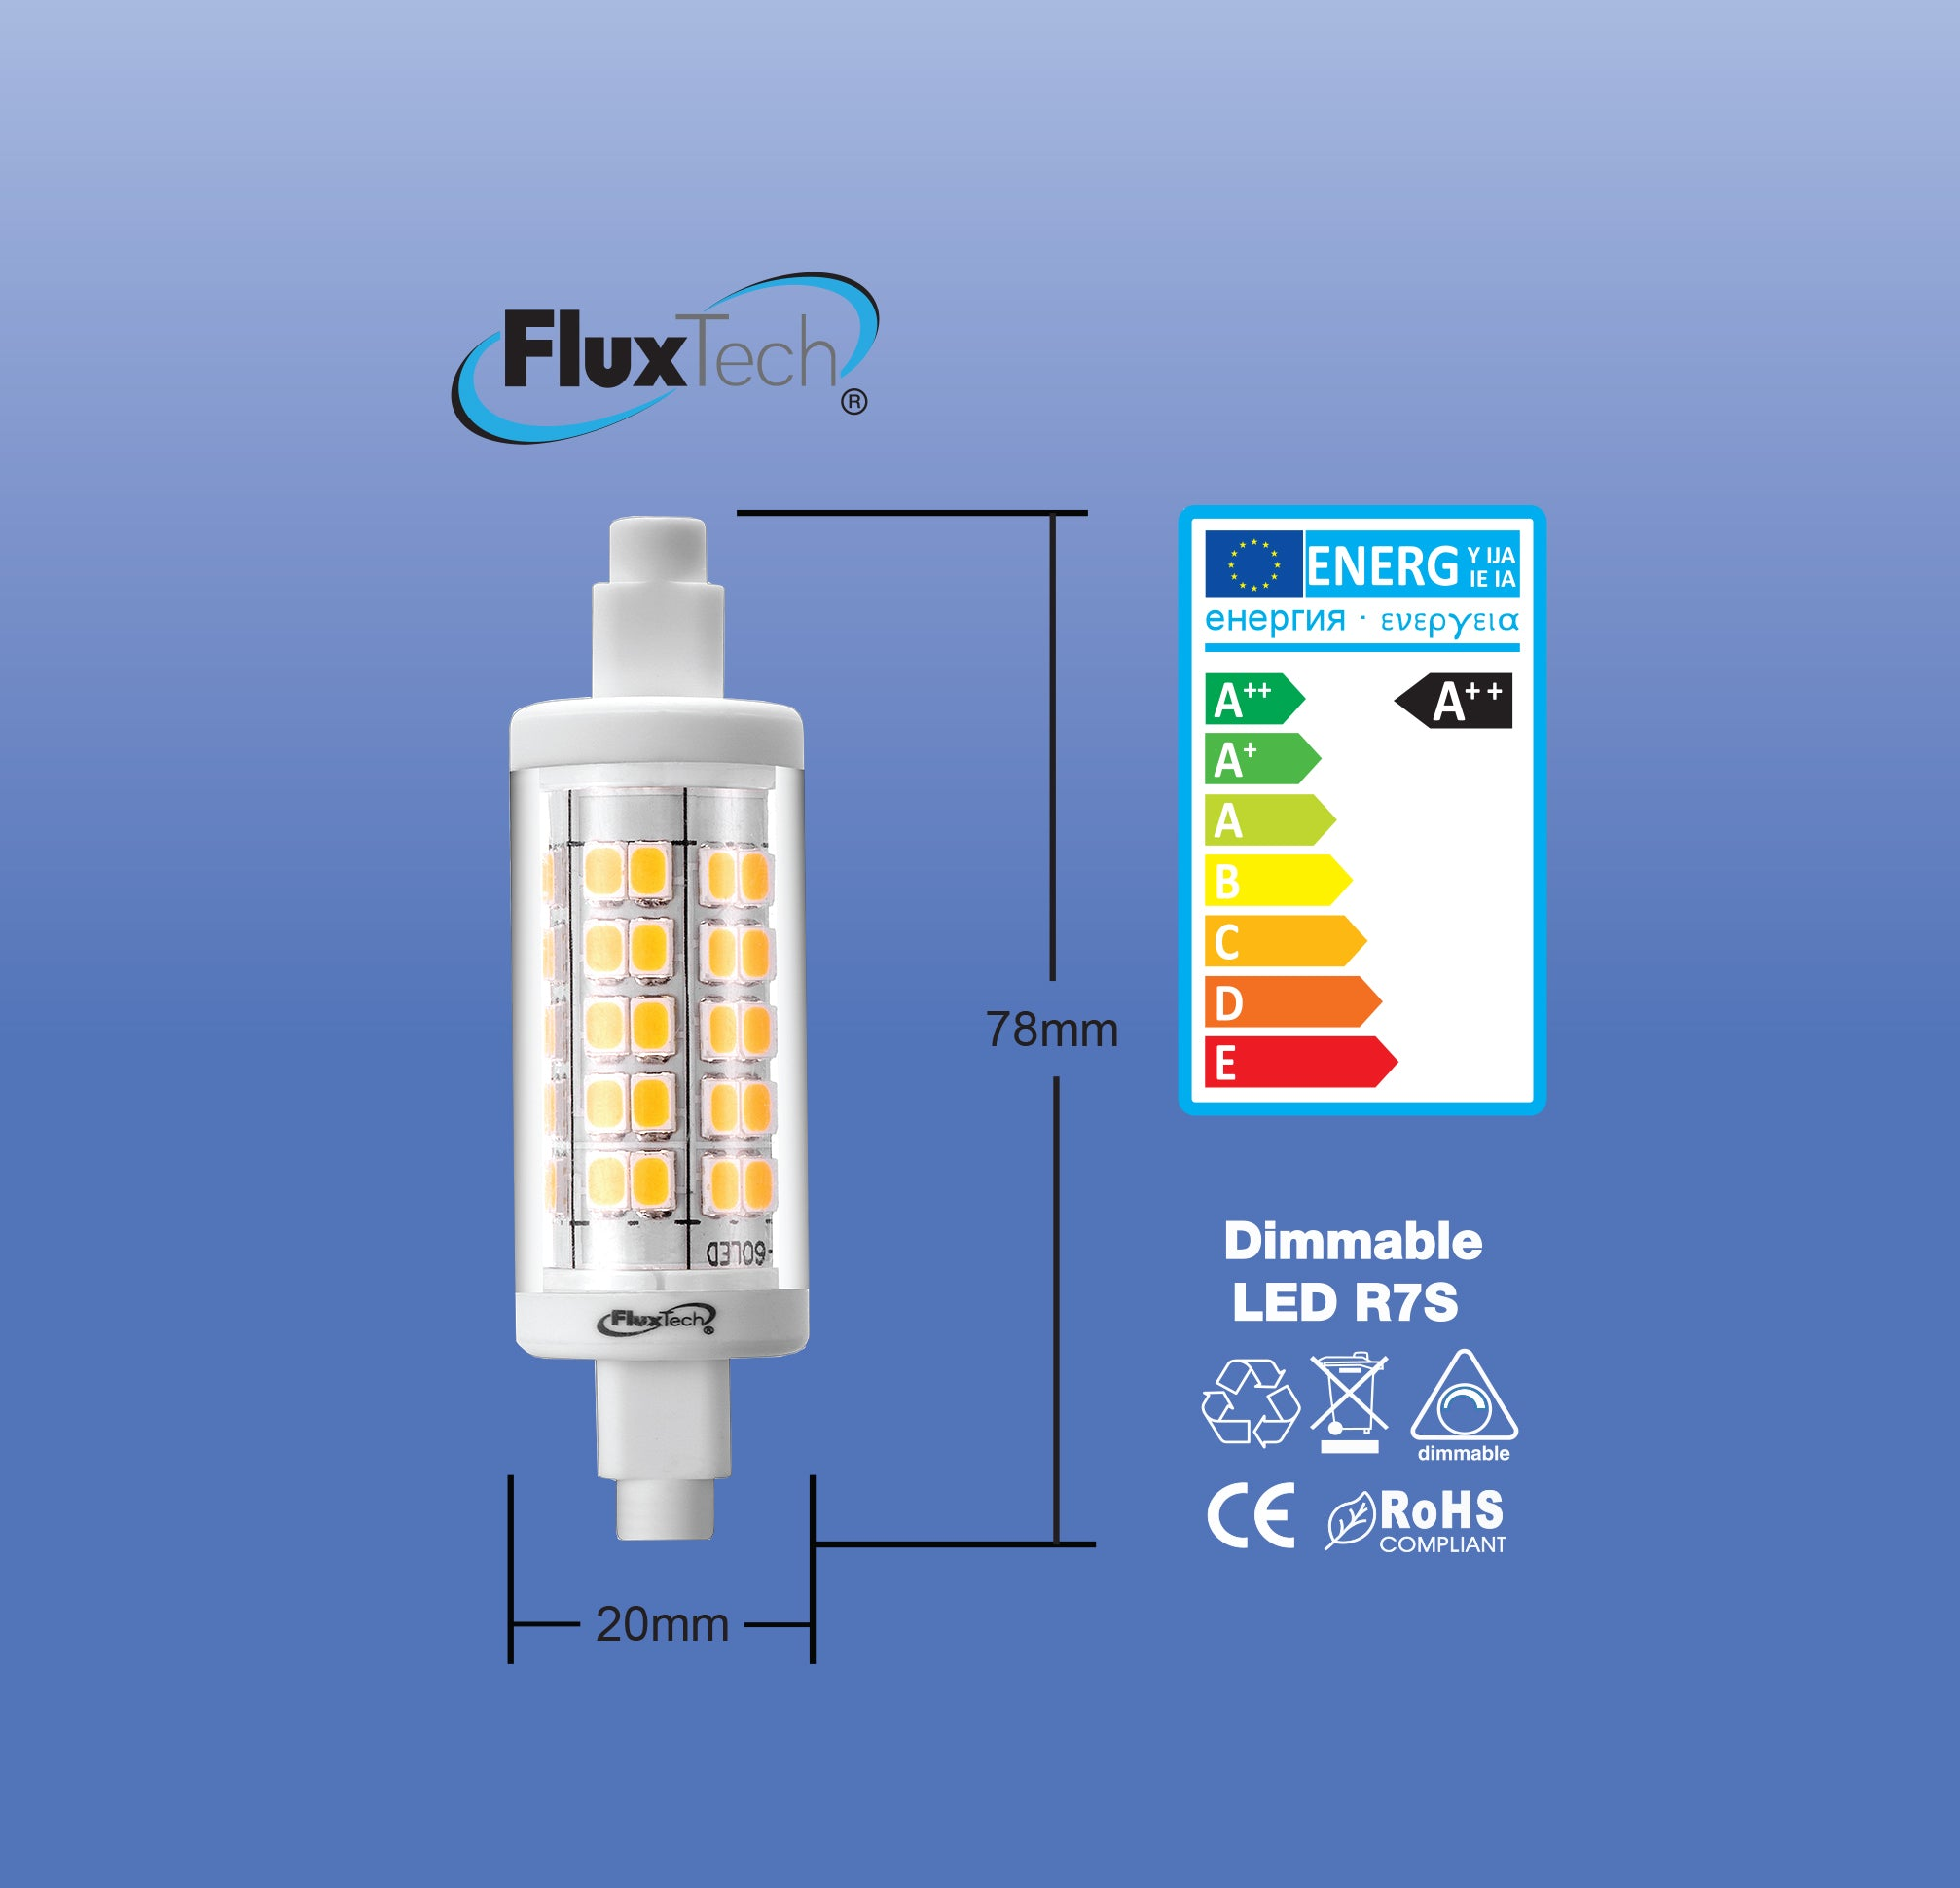 FluxTech - New Smart Dimmable 20 x 78mm R7S LED Lamp